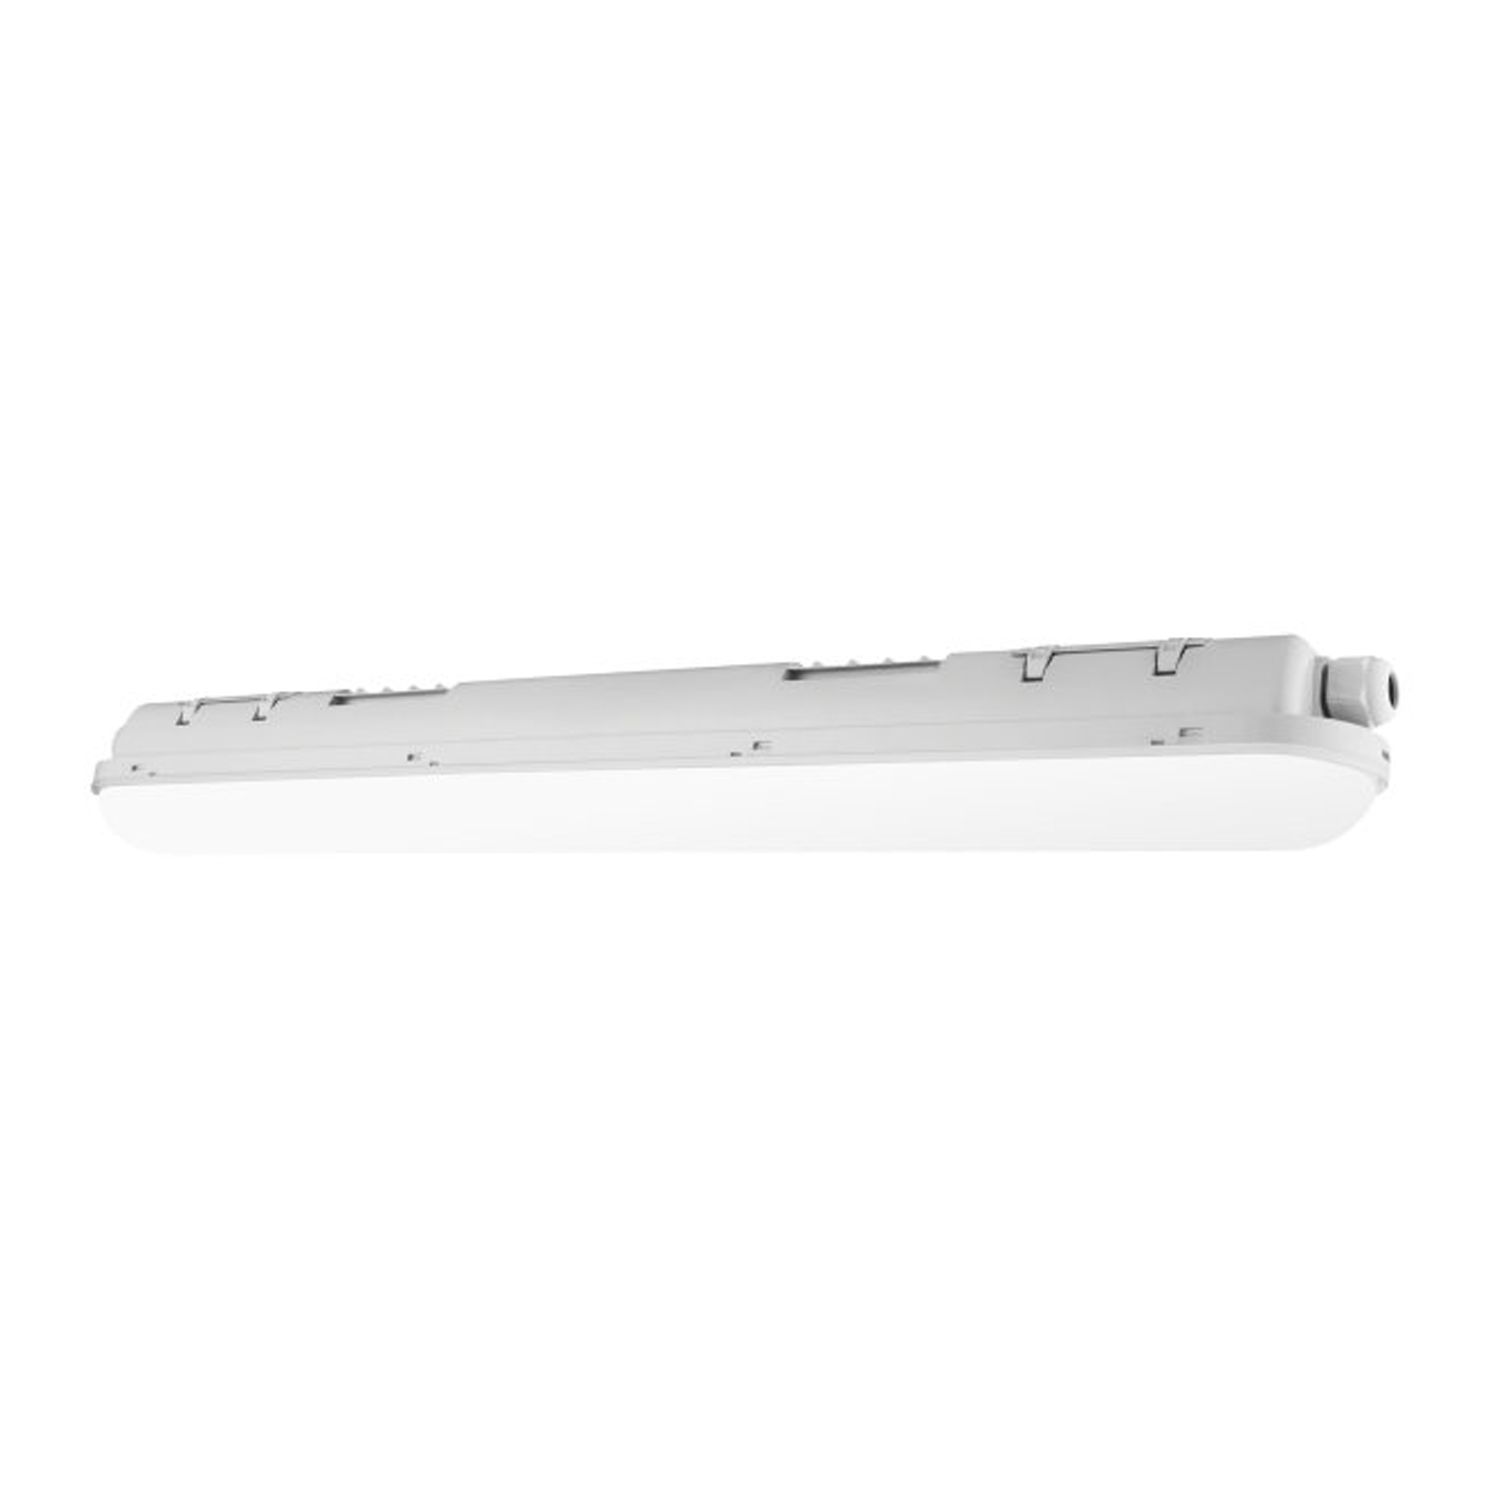 Ledvance LED Waterproof Batten Damp Proof ECO 21W 6500K IP65 60cm | Daylight